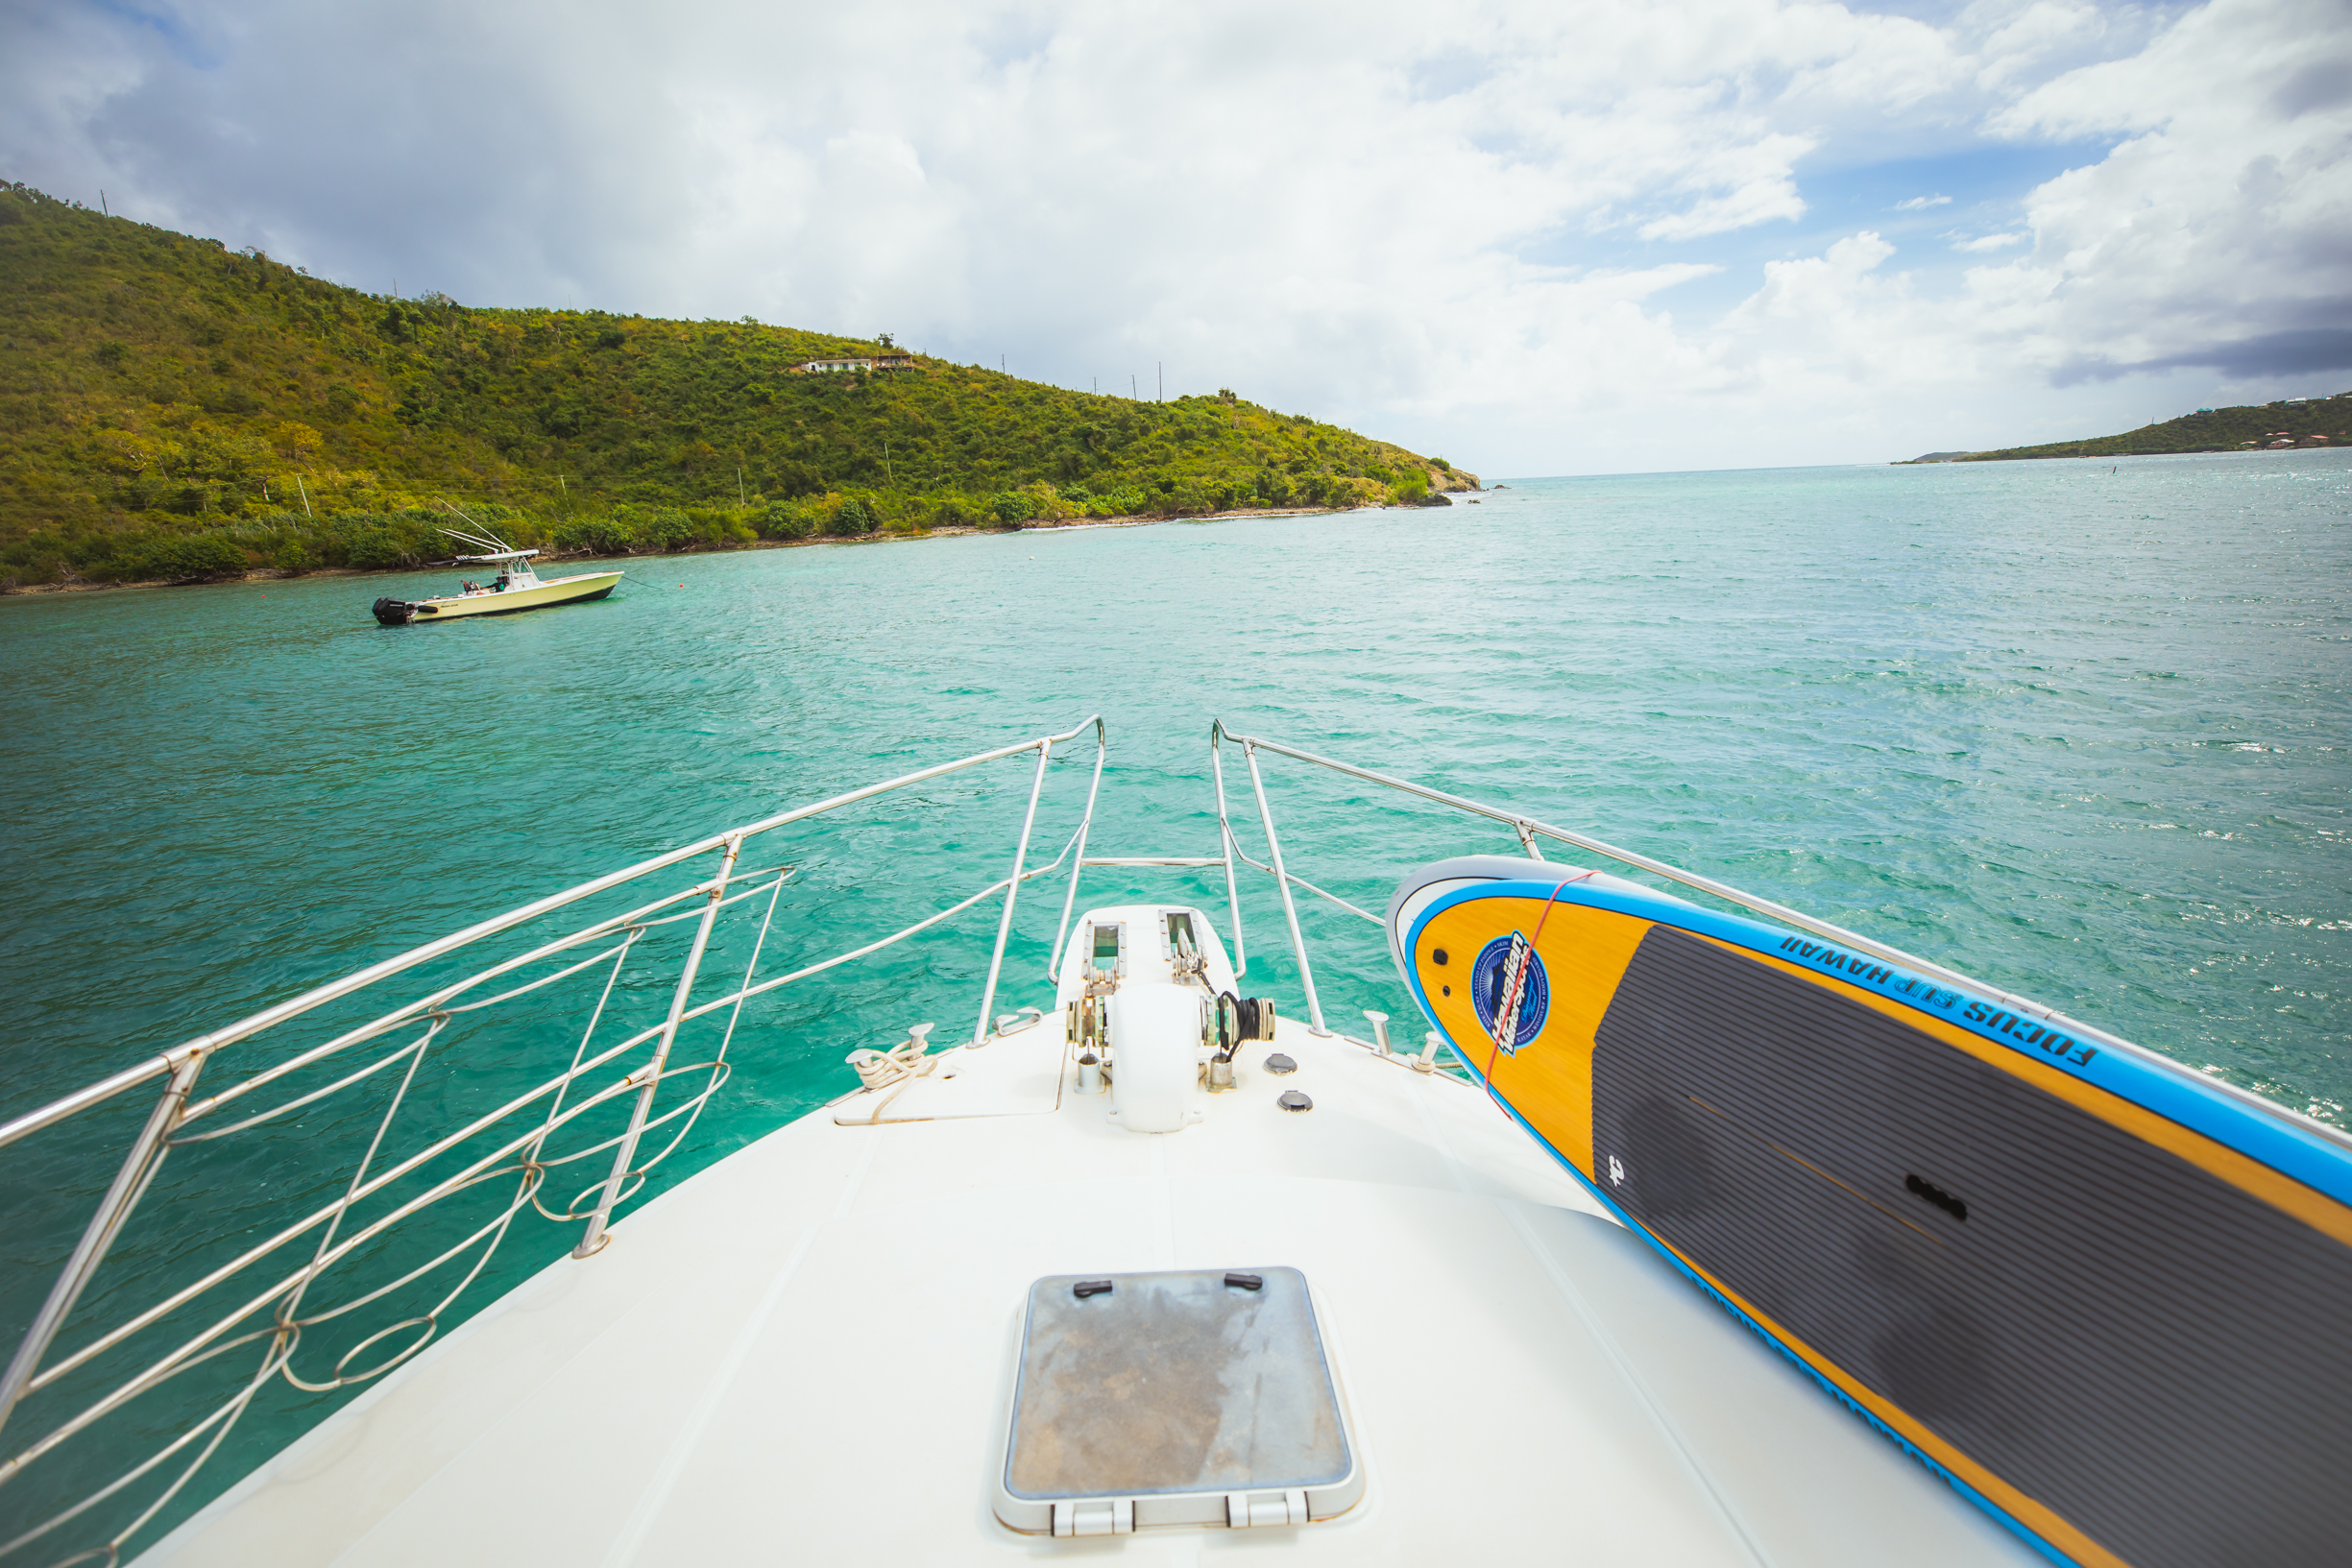 Half Day Charter (4 hrs)